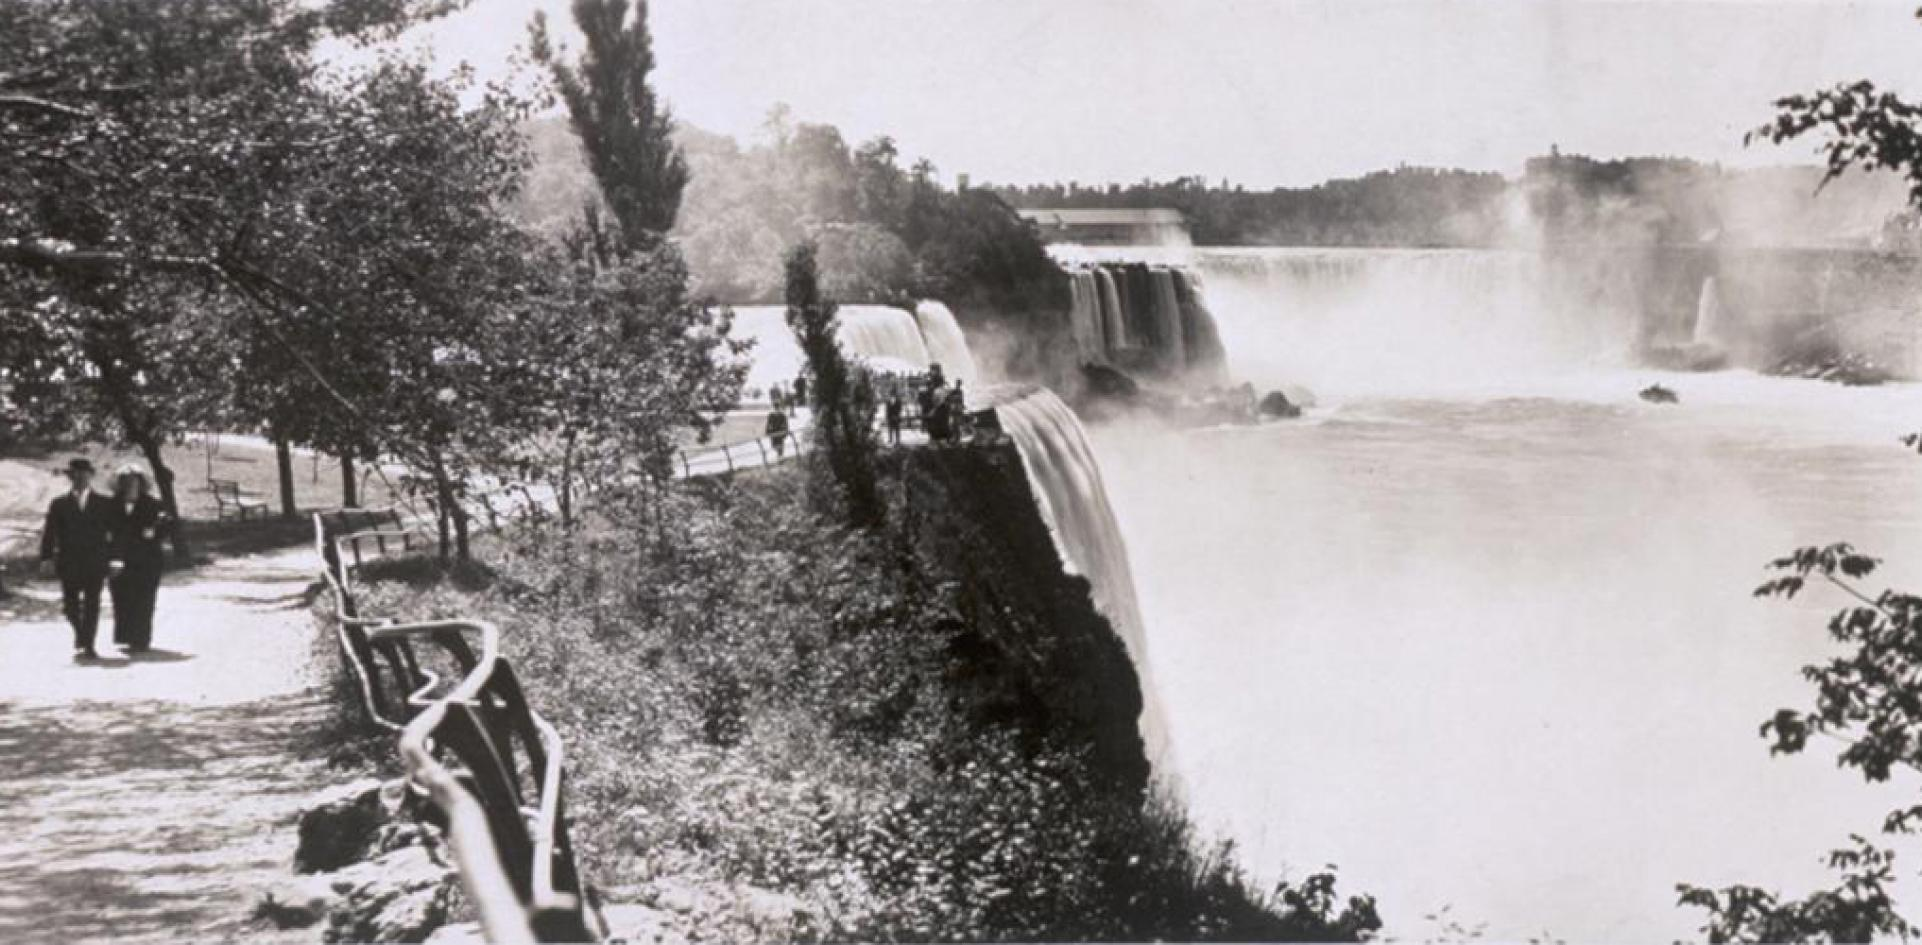 Niagara Falls: description, photo, where it is located 82